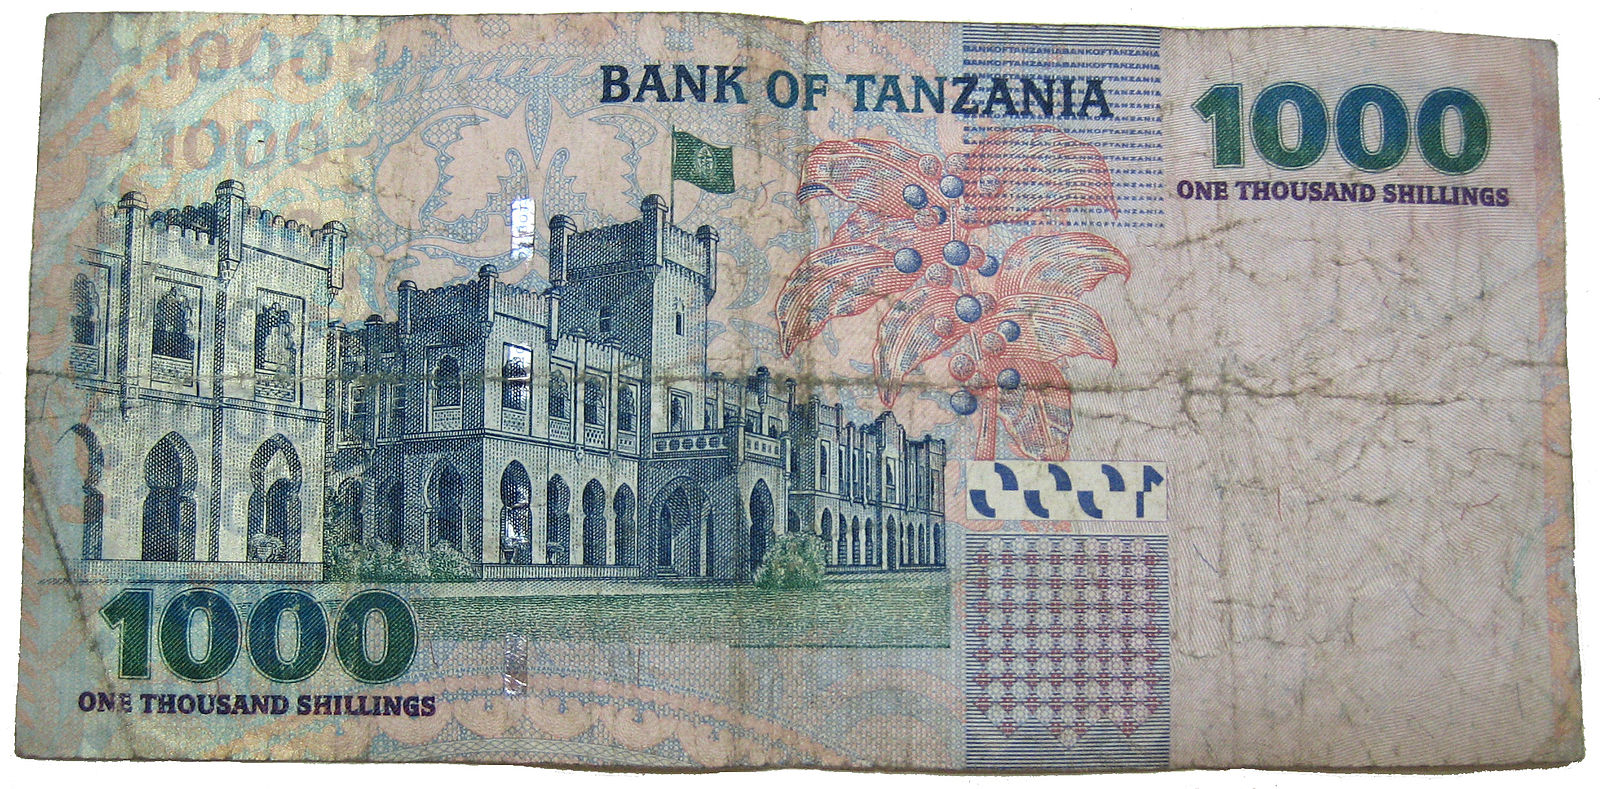 Tanzania currency